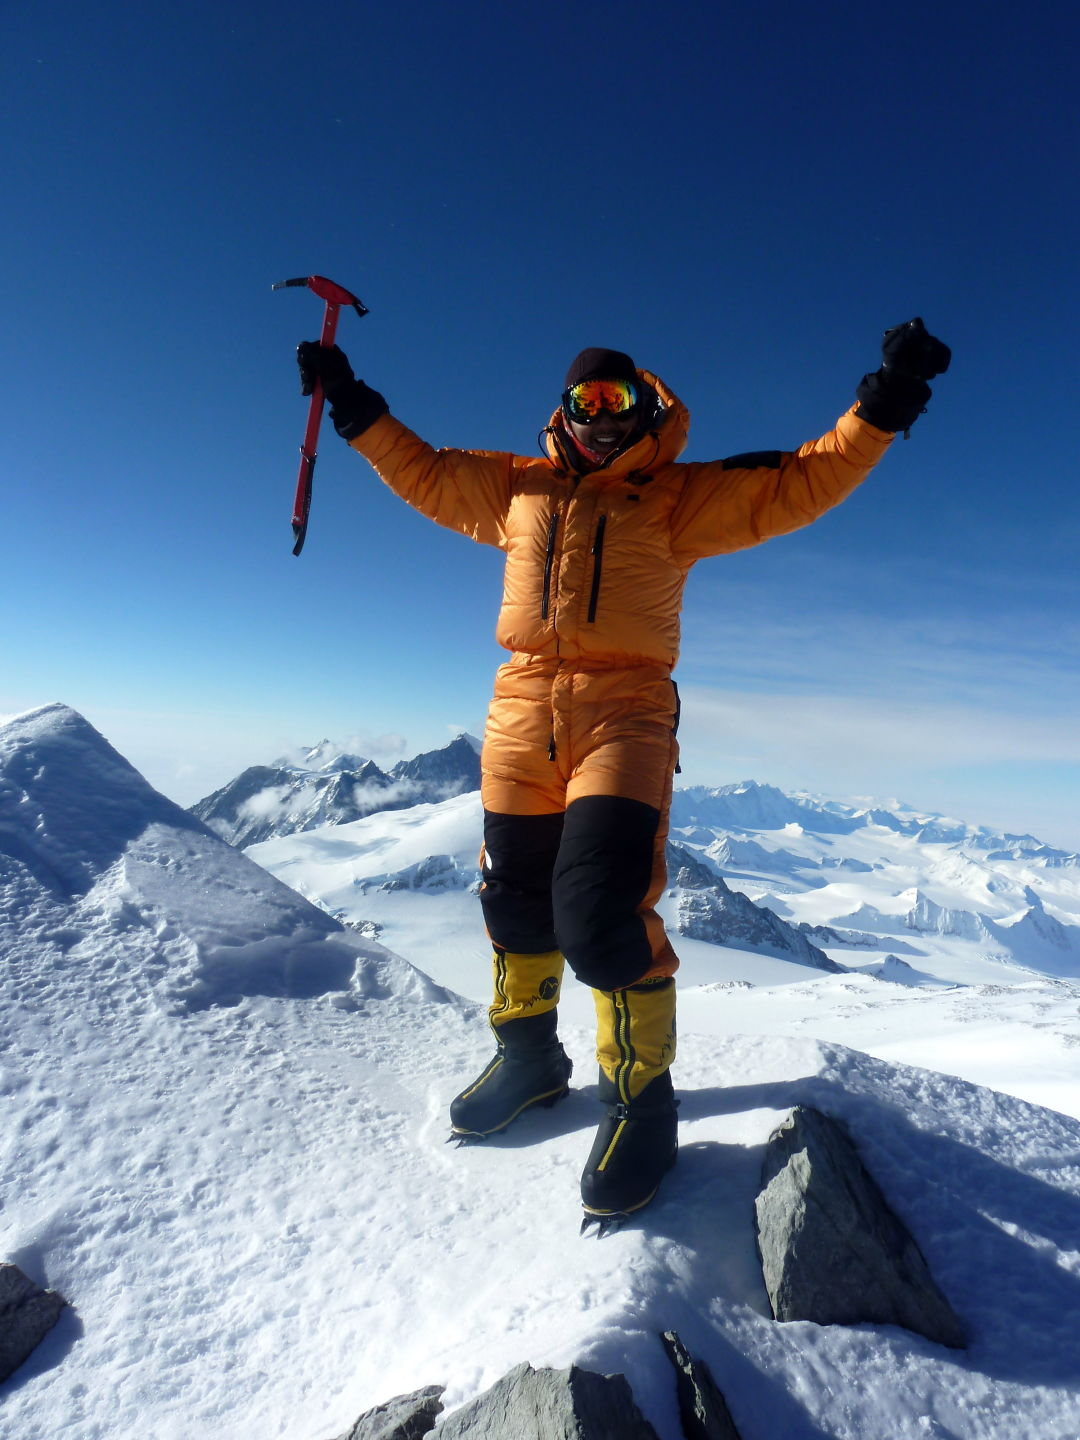 Climber in orange jacket stands on the top of a snowy mountain.